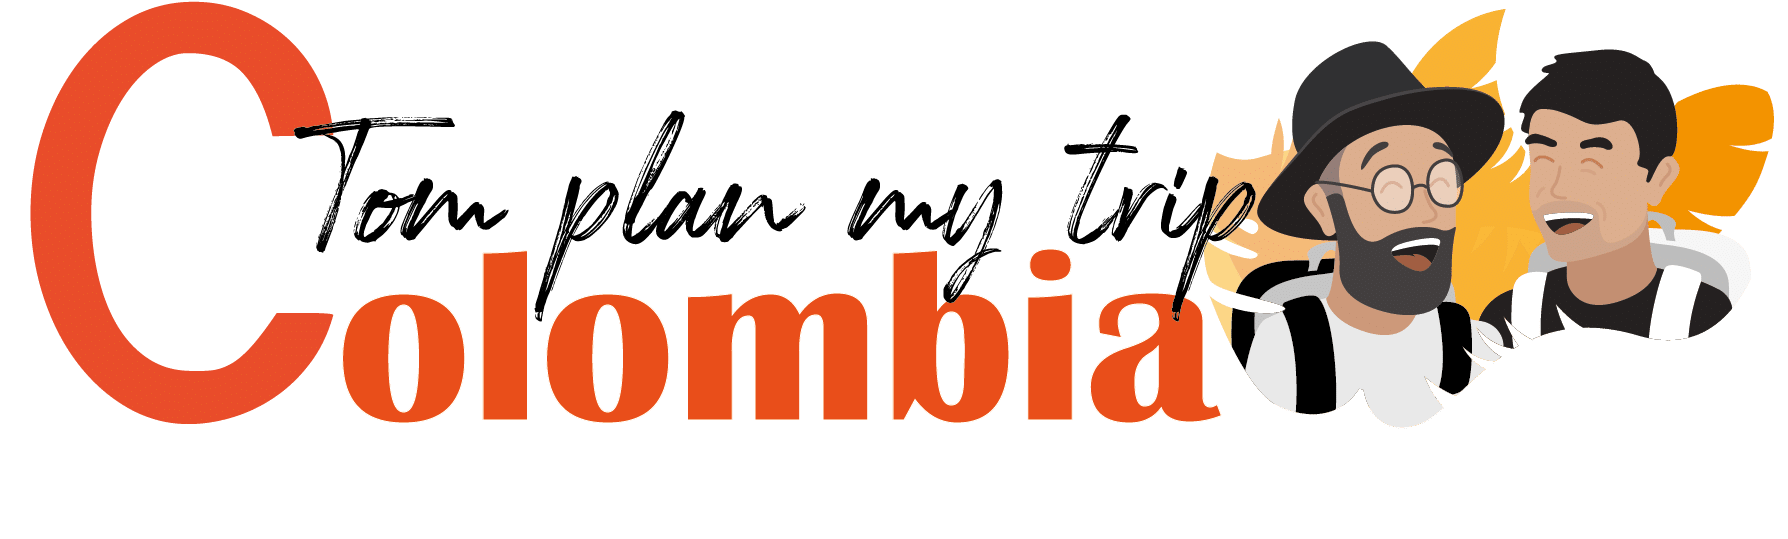 Tomplanmytrip in Colombia